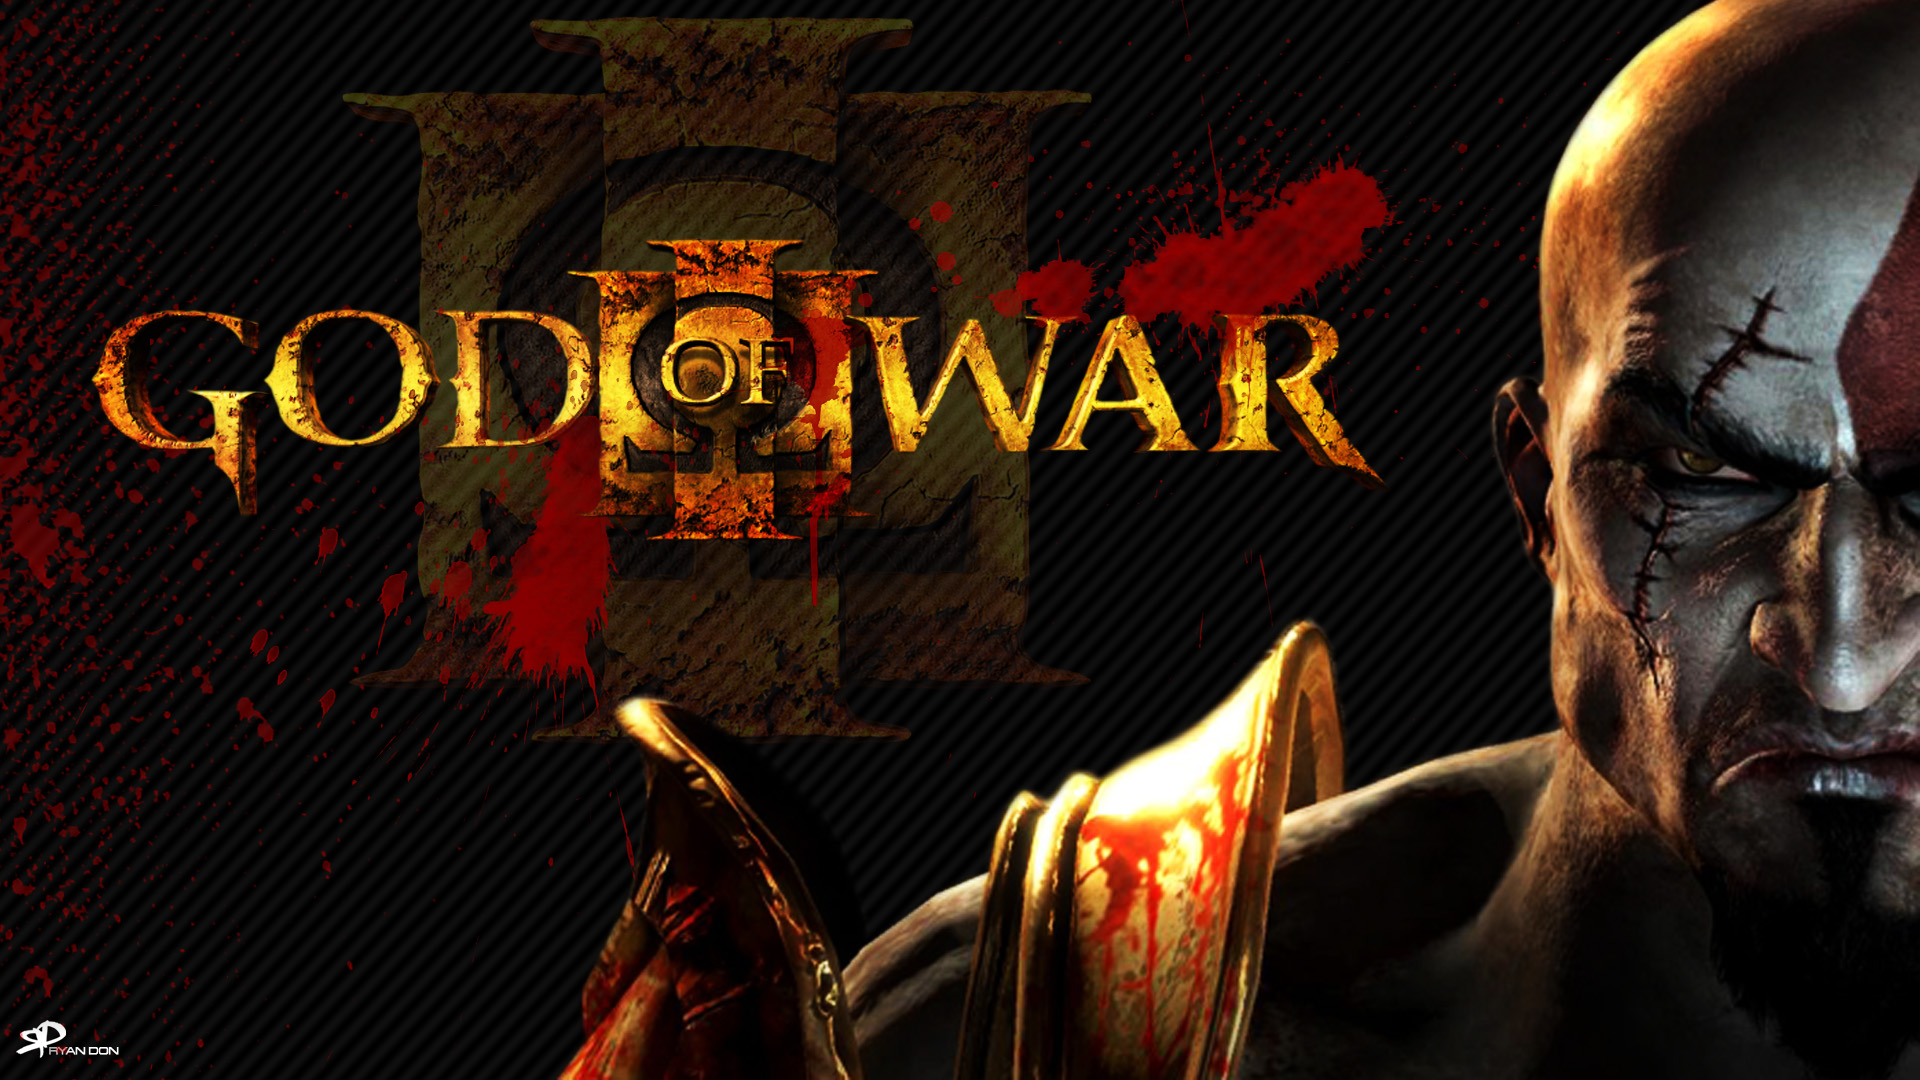 God of war iii - kratos wallpapers